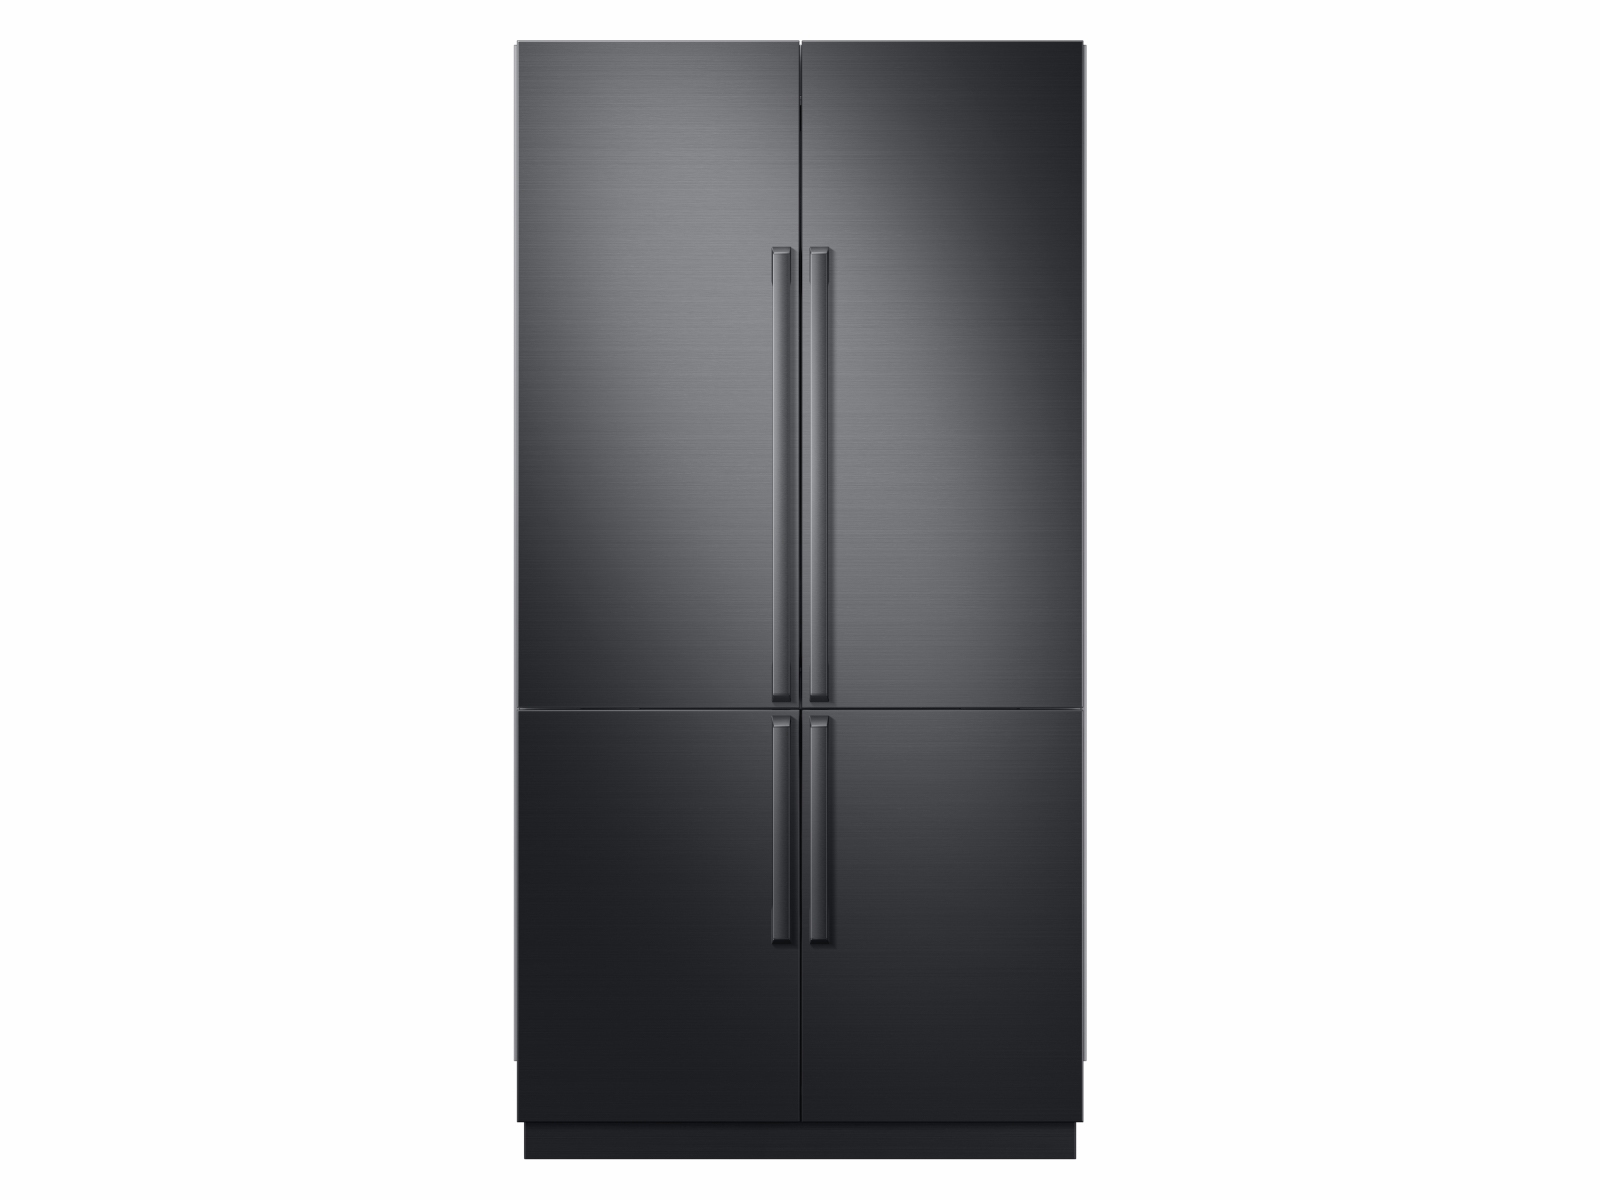 Built In Chef Collection Refrigerator Brf425200 Owner